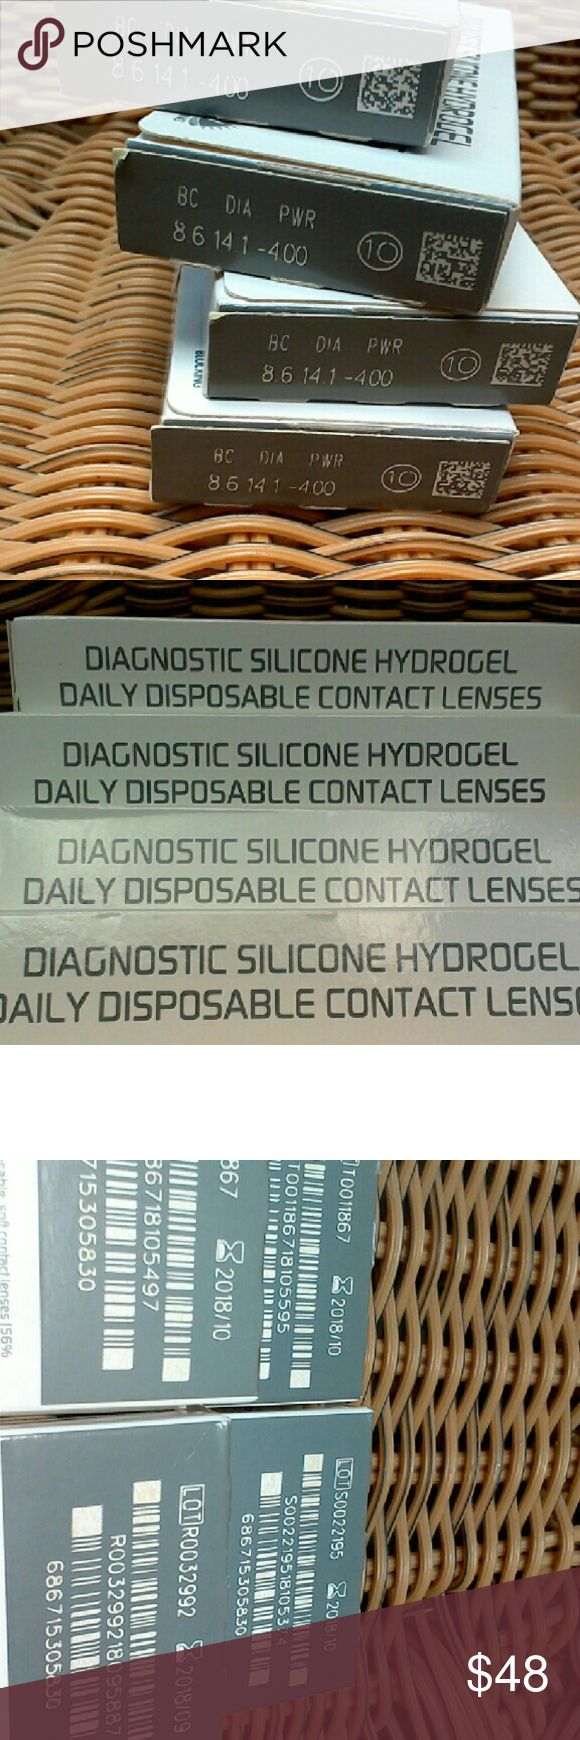 Lot of 40 Daily Hydrogel Disposable Contact lenses Lot of 40, All are sealed & unexpired. Strength & size are -4.00, 14.1, 8.6. These are produced by Saulton Pharmaceuticals. Questions welcomed, I have other lenses, torric & Astigmatism. Asking 1.20 per lense. Price is firm I HAVE MANY DIFFERENT STRENGTHS! Message me anytime ask 1.20 per lense, Discounts on big orders Other